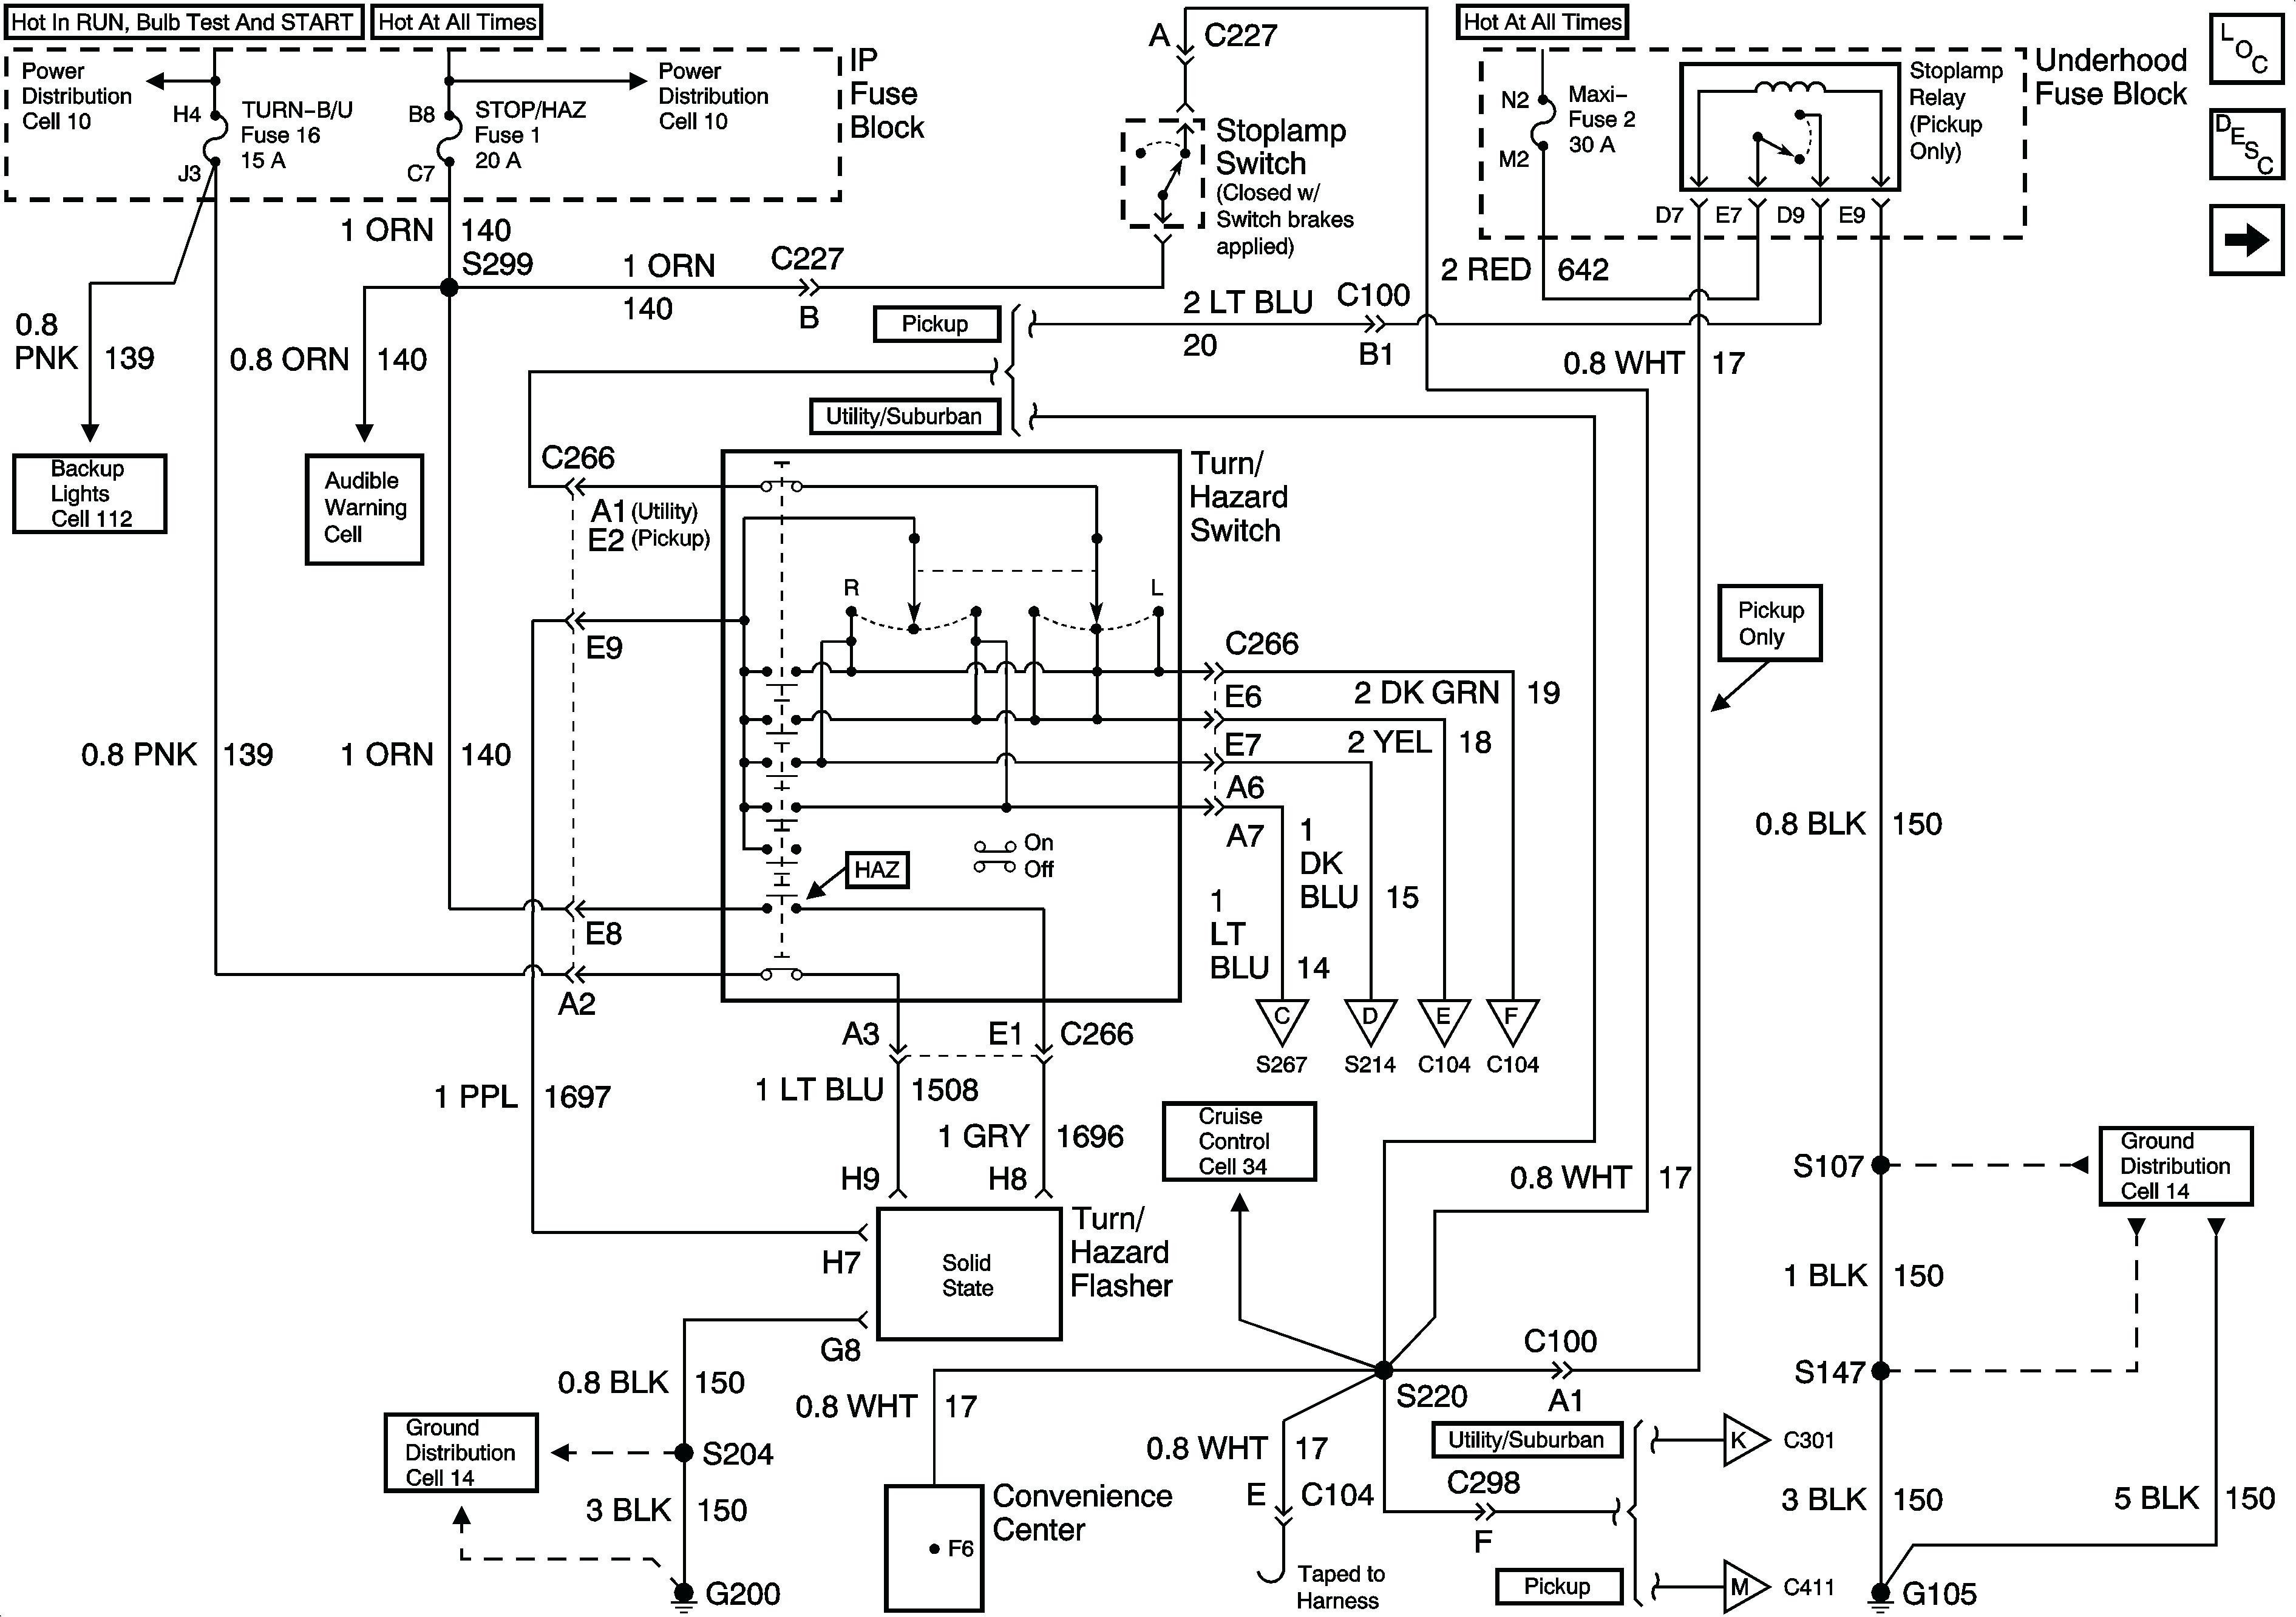 2000 Chevy S10 Engine Diagram 2000 Silverado Horn Wiring Diagram Free Picture Opinions About Of 2000 Chevy S10 Engine Diagram